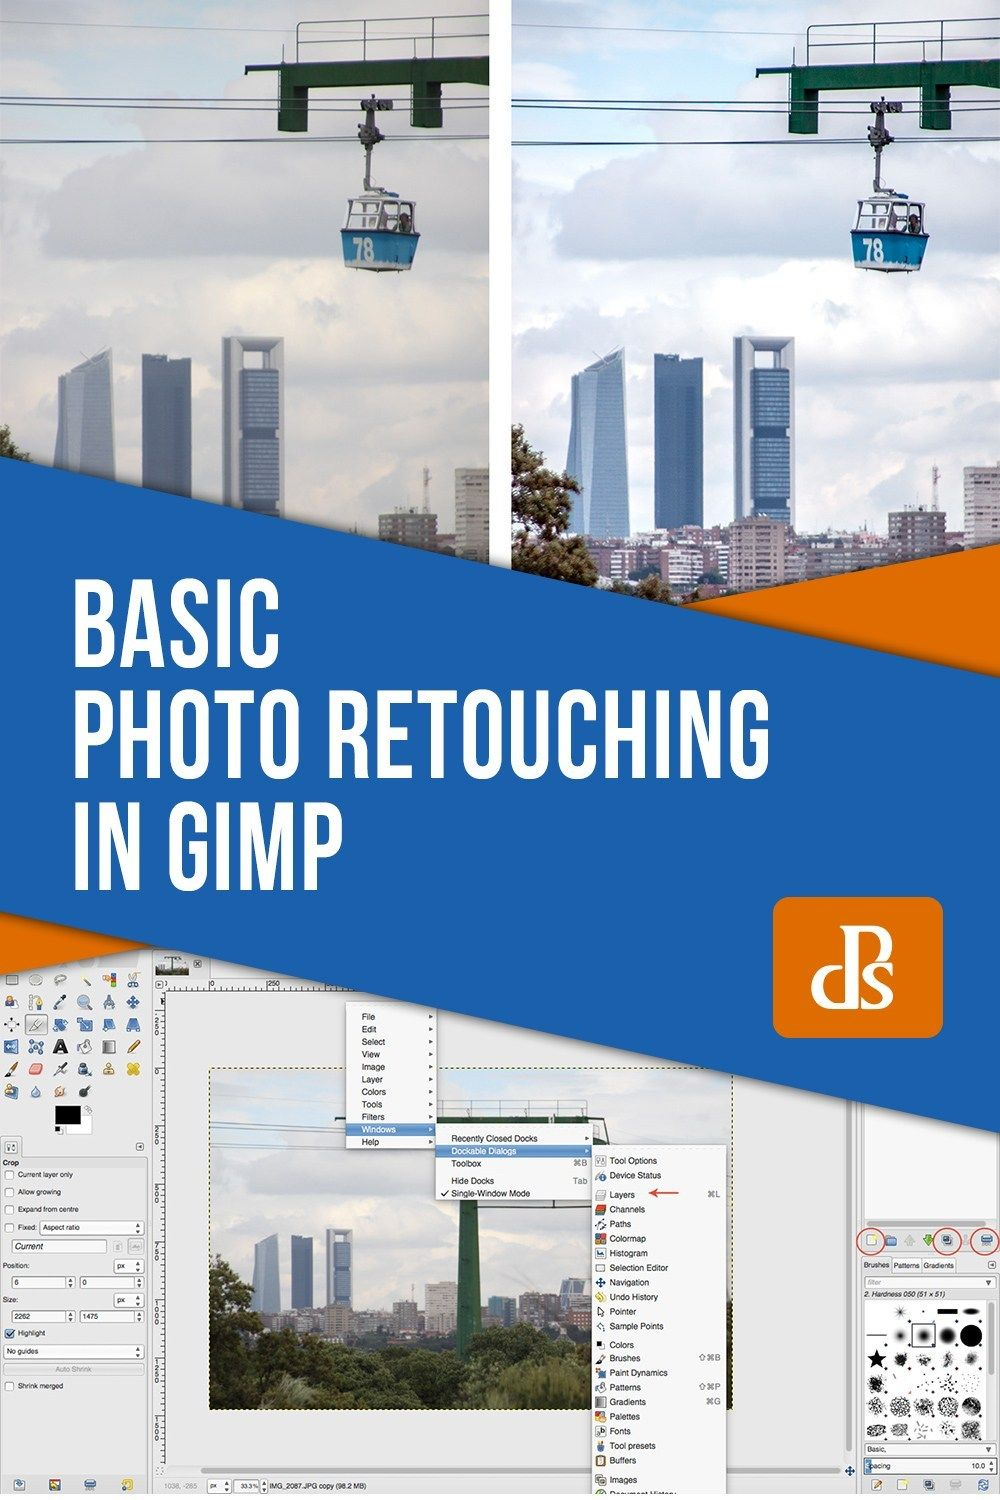 How To Use Gimp For Basic Photo Re Touching Gimp Photo Editing Photo Retouching Gimp